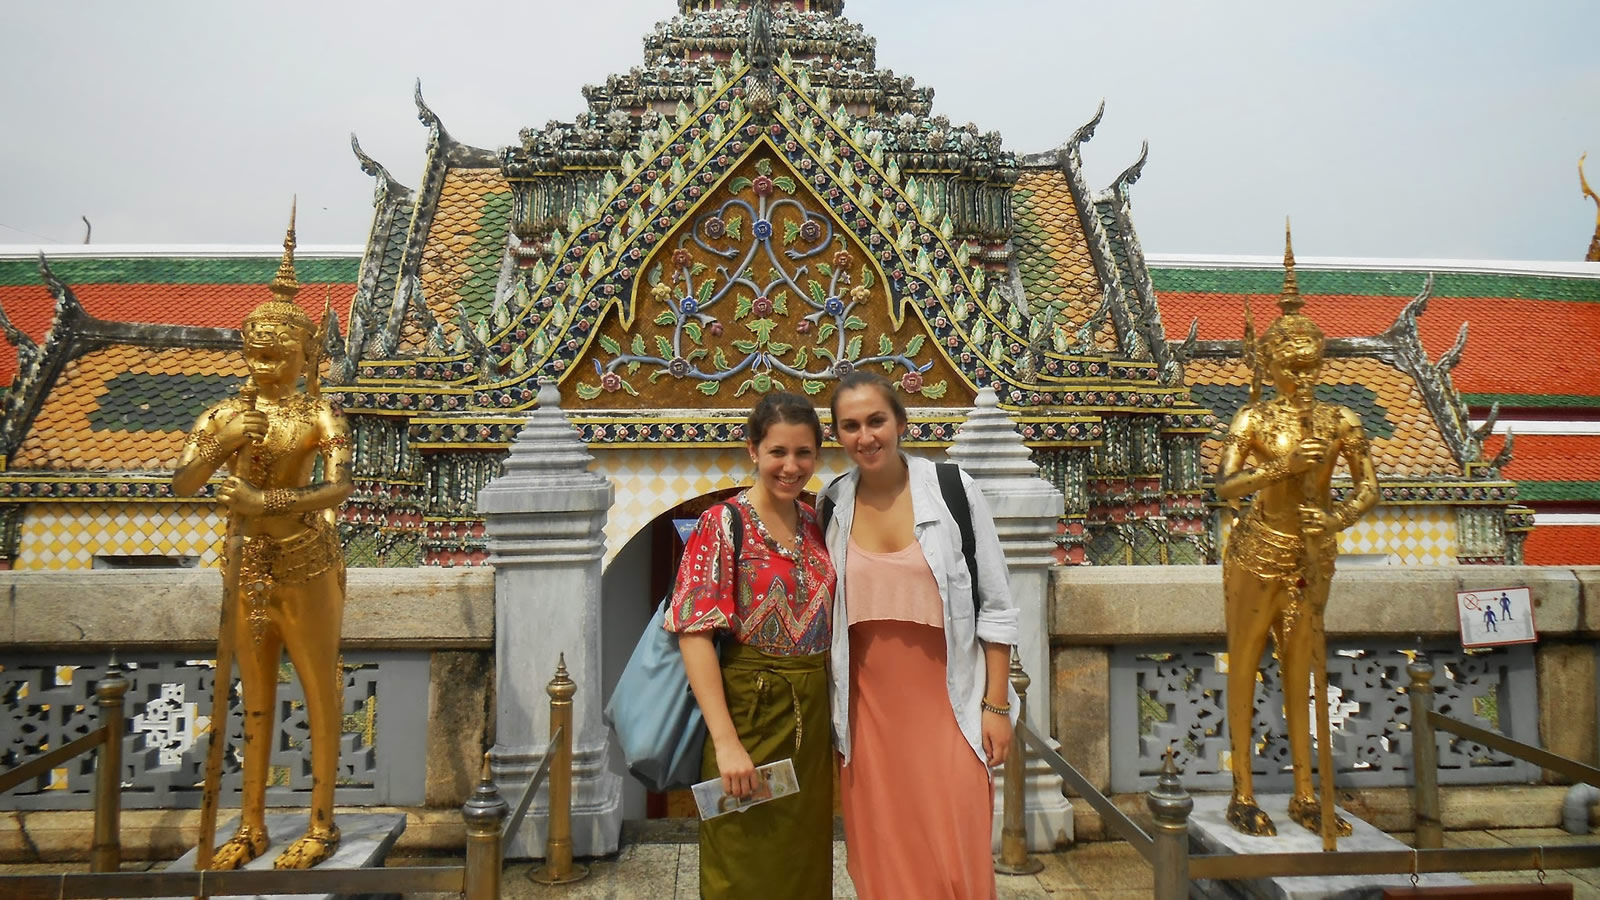 Two Students in Front of Asian Pagoda with Golden Statues